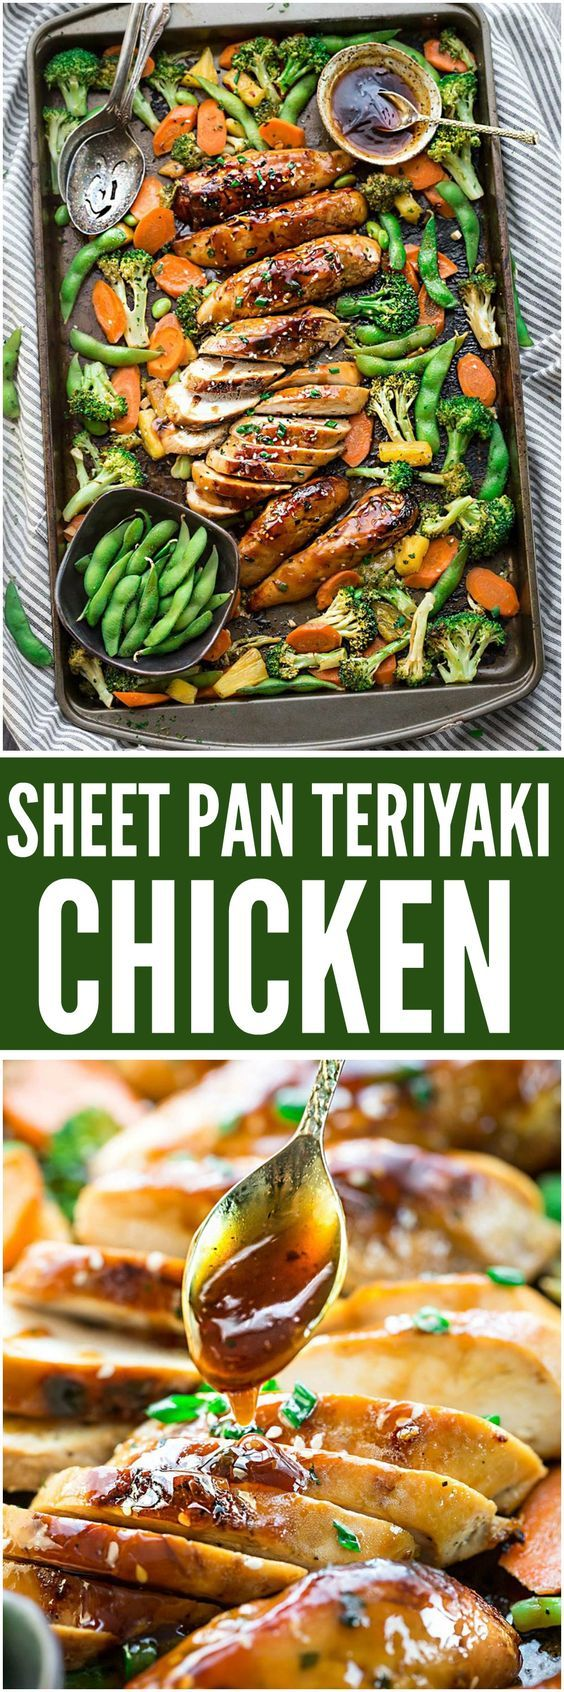 Sheet Pan Teriyaki Chicken with Vegetables | The Recipe Critic